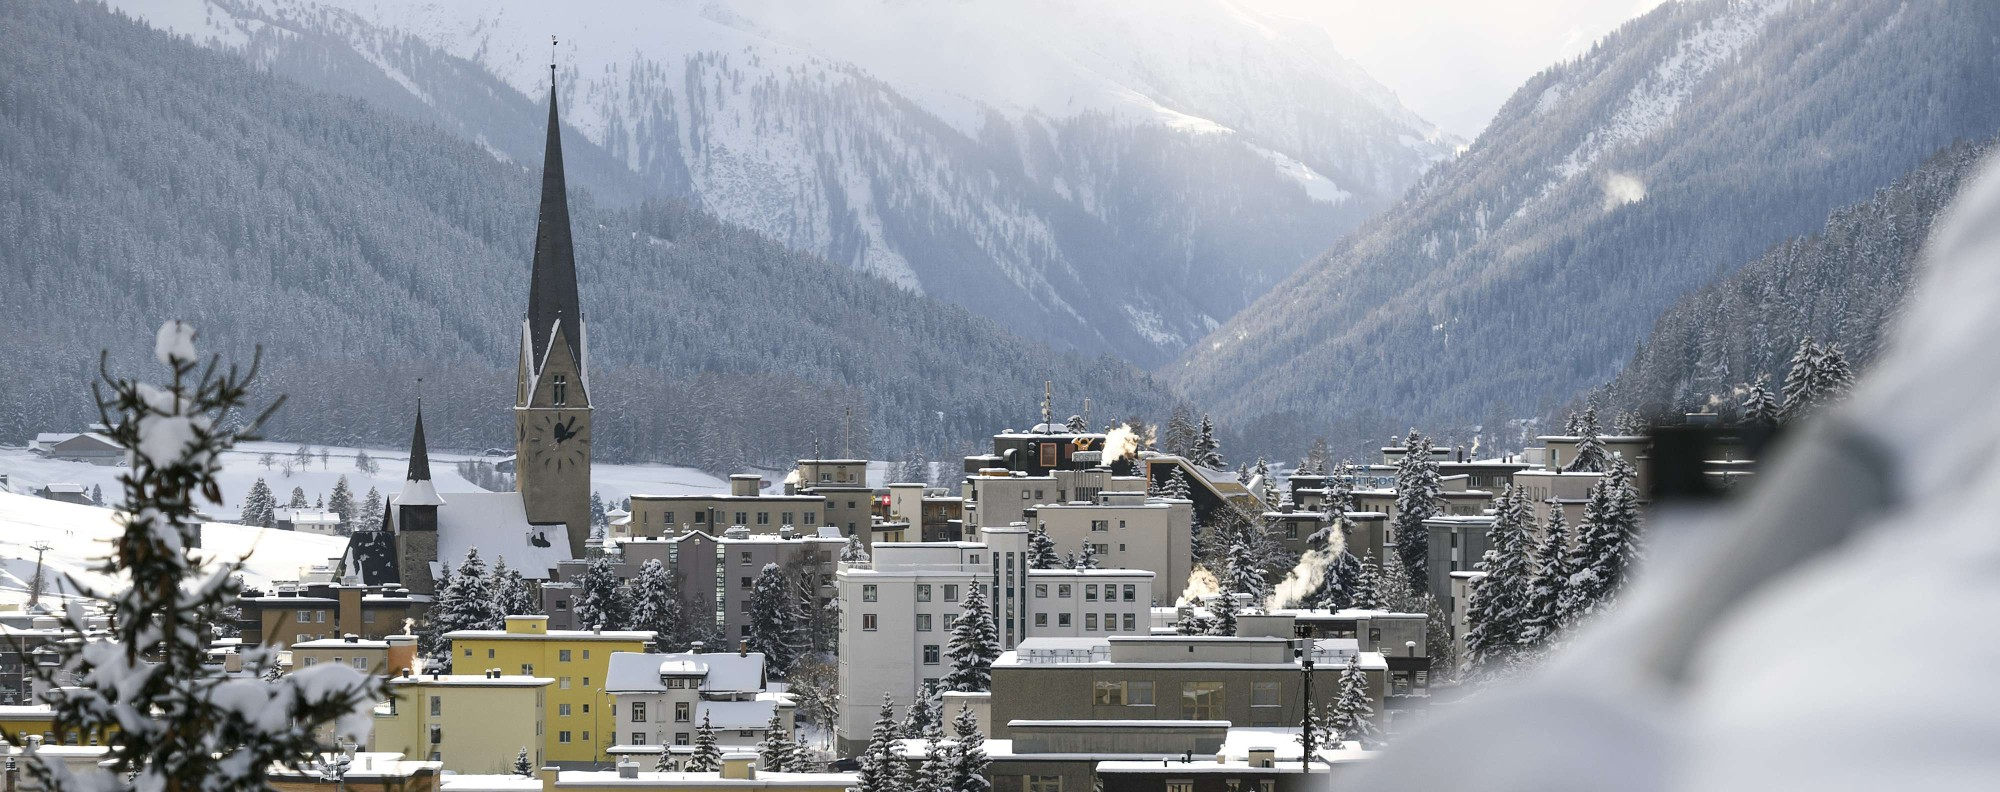 The ski resort of Davos, which hosts the World Economic Forum. Photo: AFP